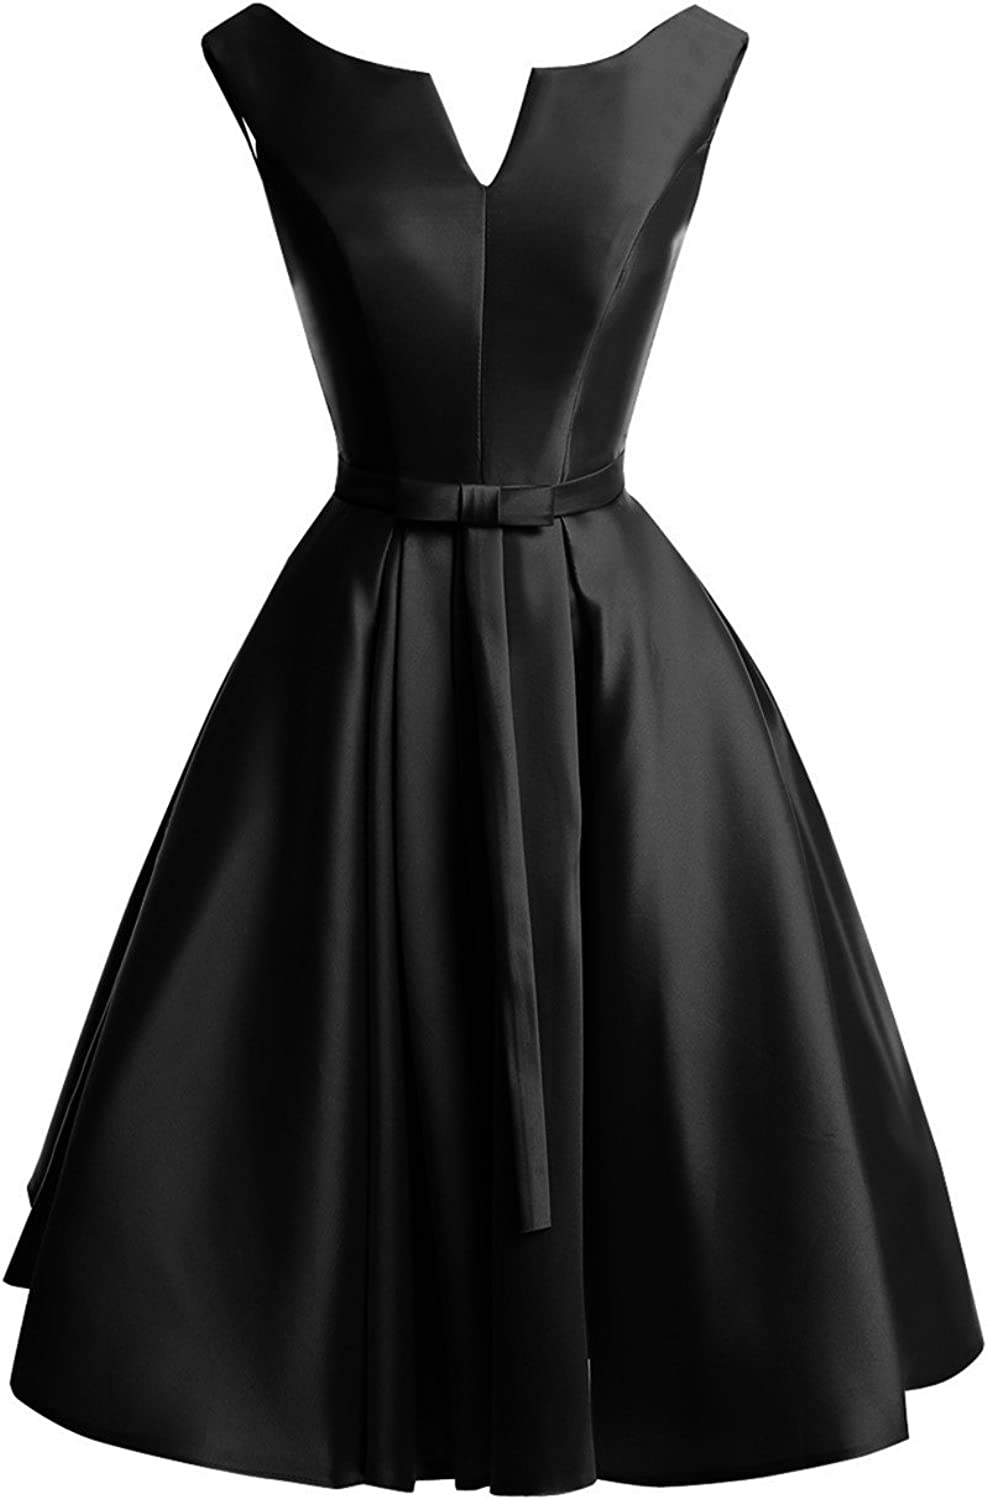 Bess Bridal Women's Lace Up A Line Knee Length Christmas Prom Homecoming Dress